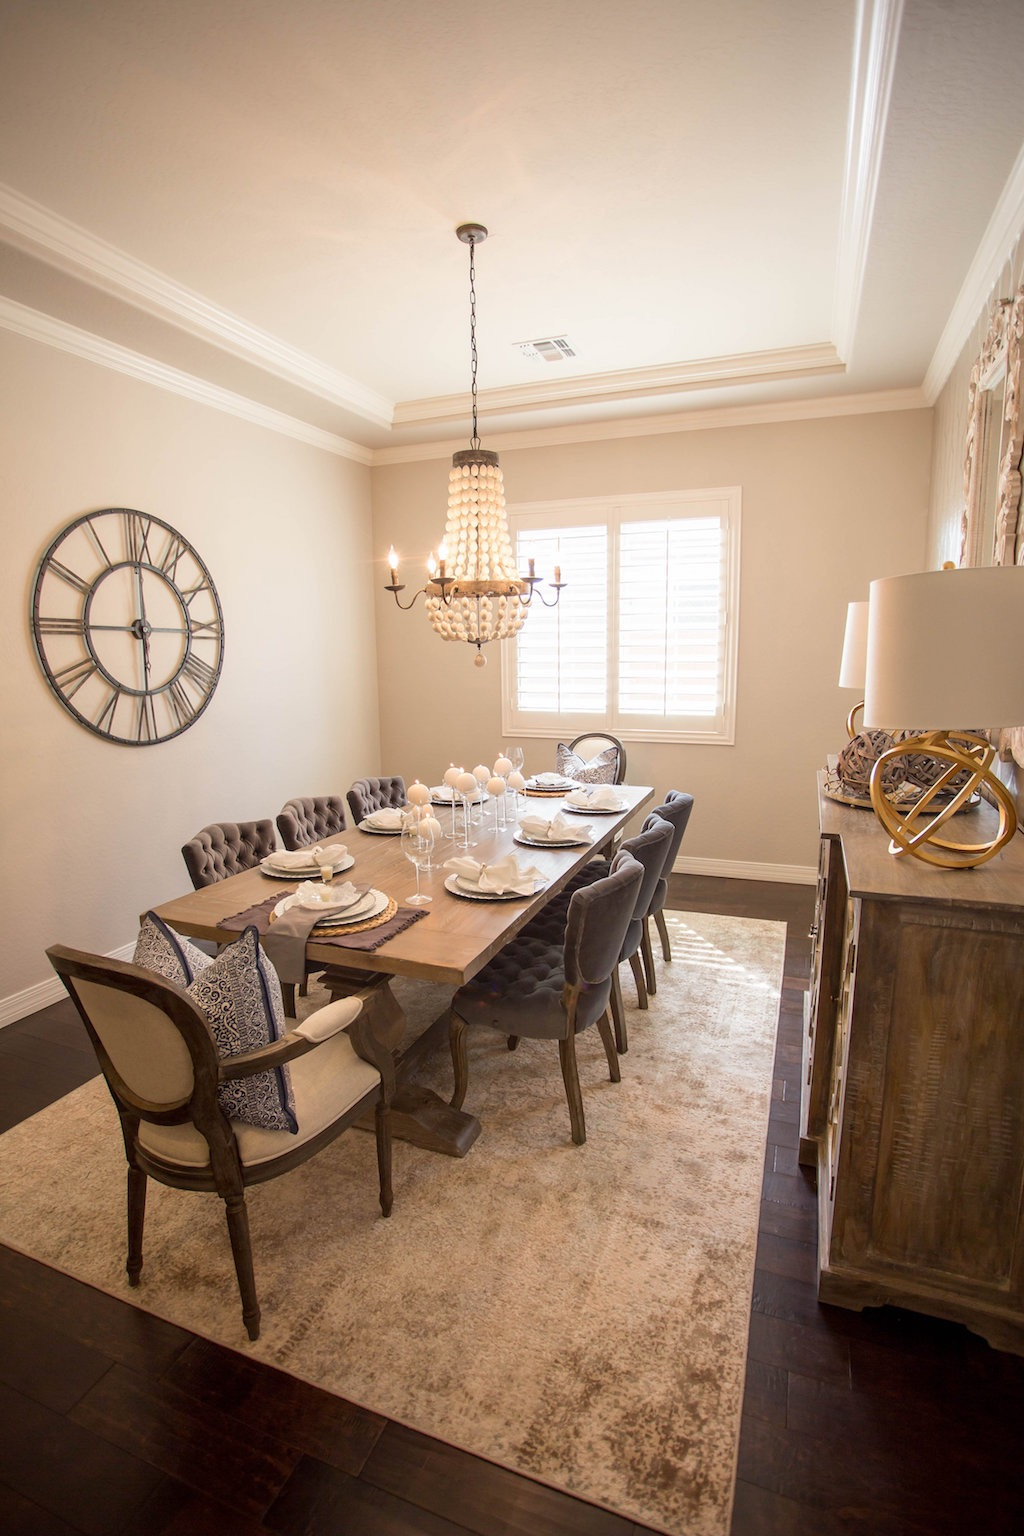 Large, Rustic Table In Warm And Inviting Dining Room (Image 15 of 36)